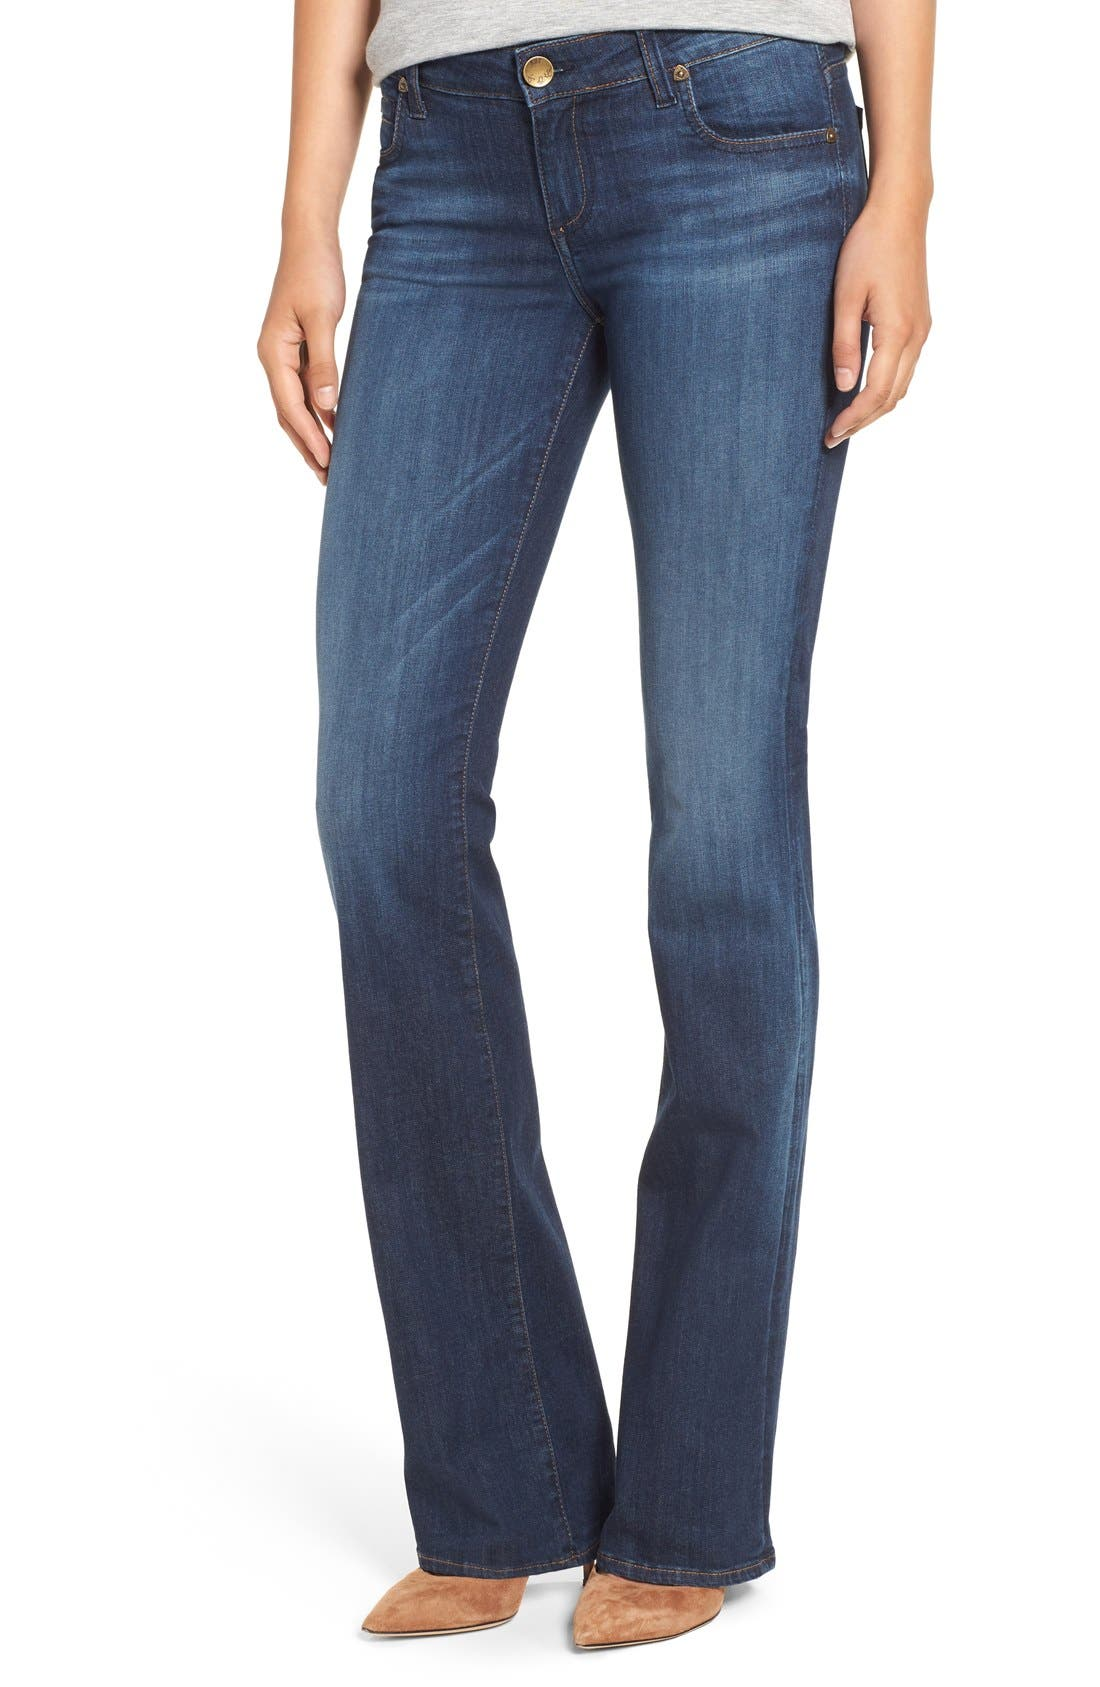 Main Image - KUT from the Kloth 'Natalie' Stretch Bootcut Jeans (Adaptive) (Regular & Petite)